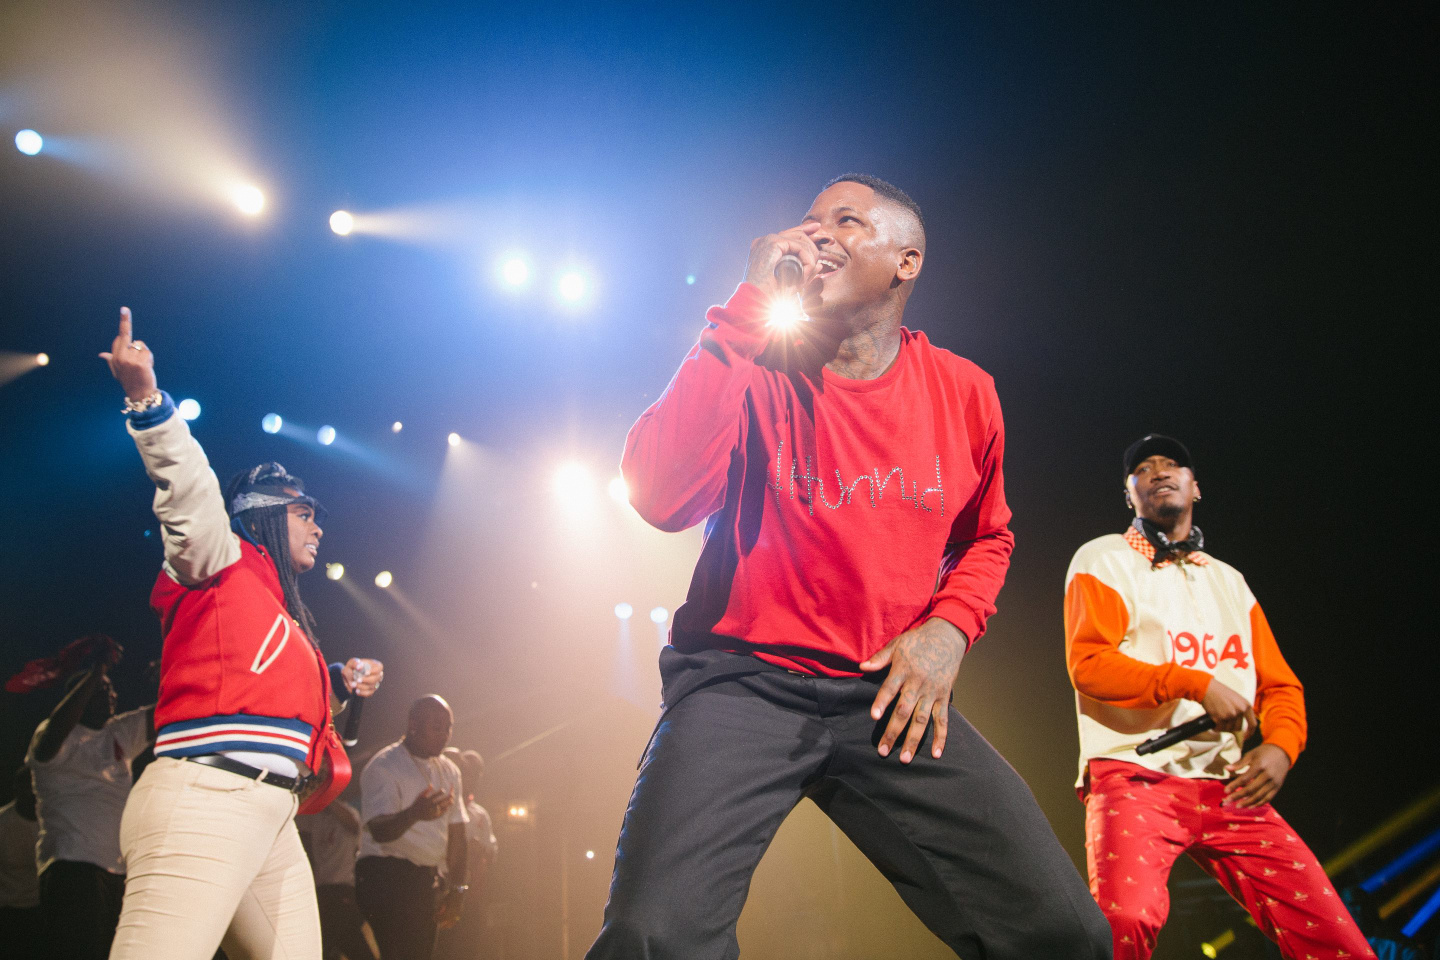 With their 4Hunnid clothing line, YG and his team are playing the long game